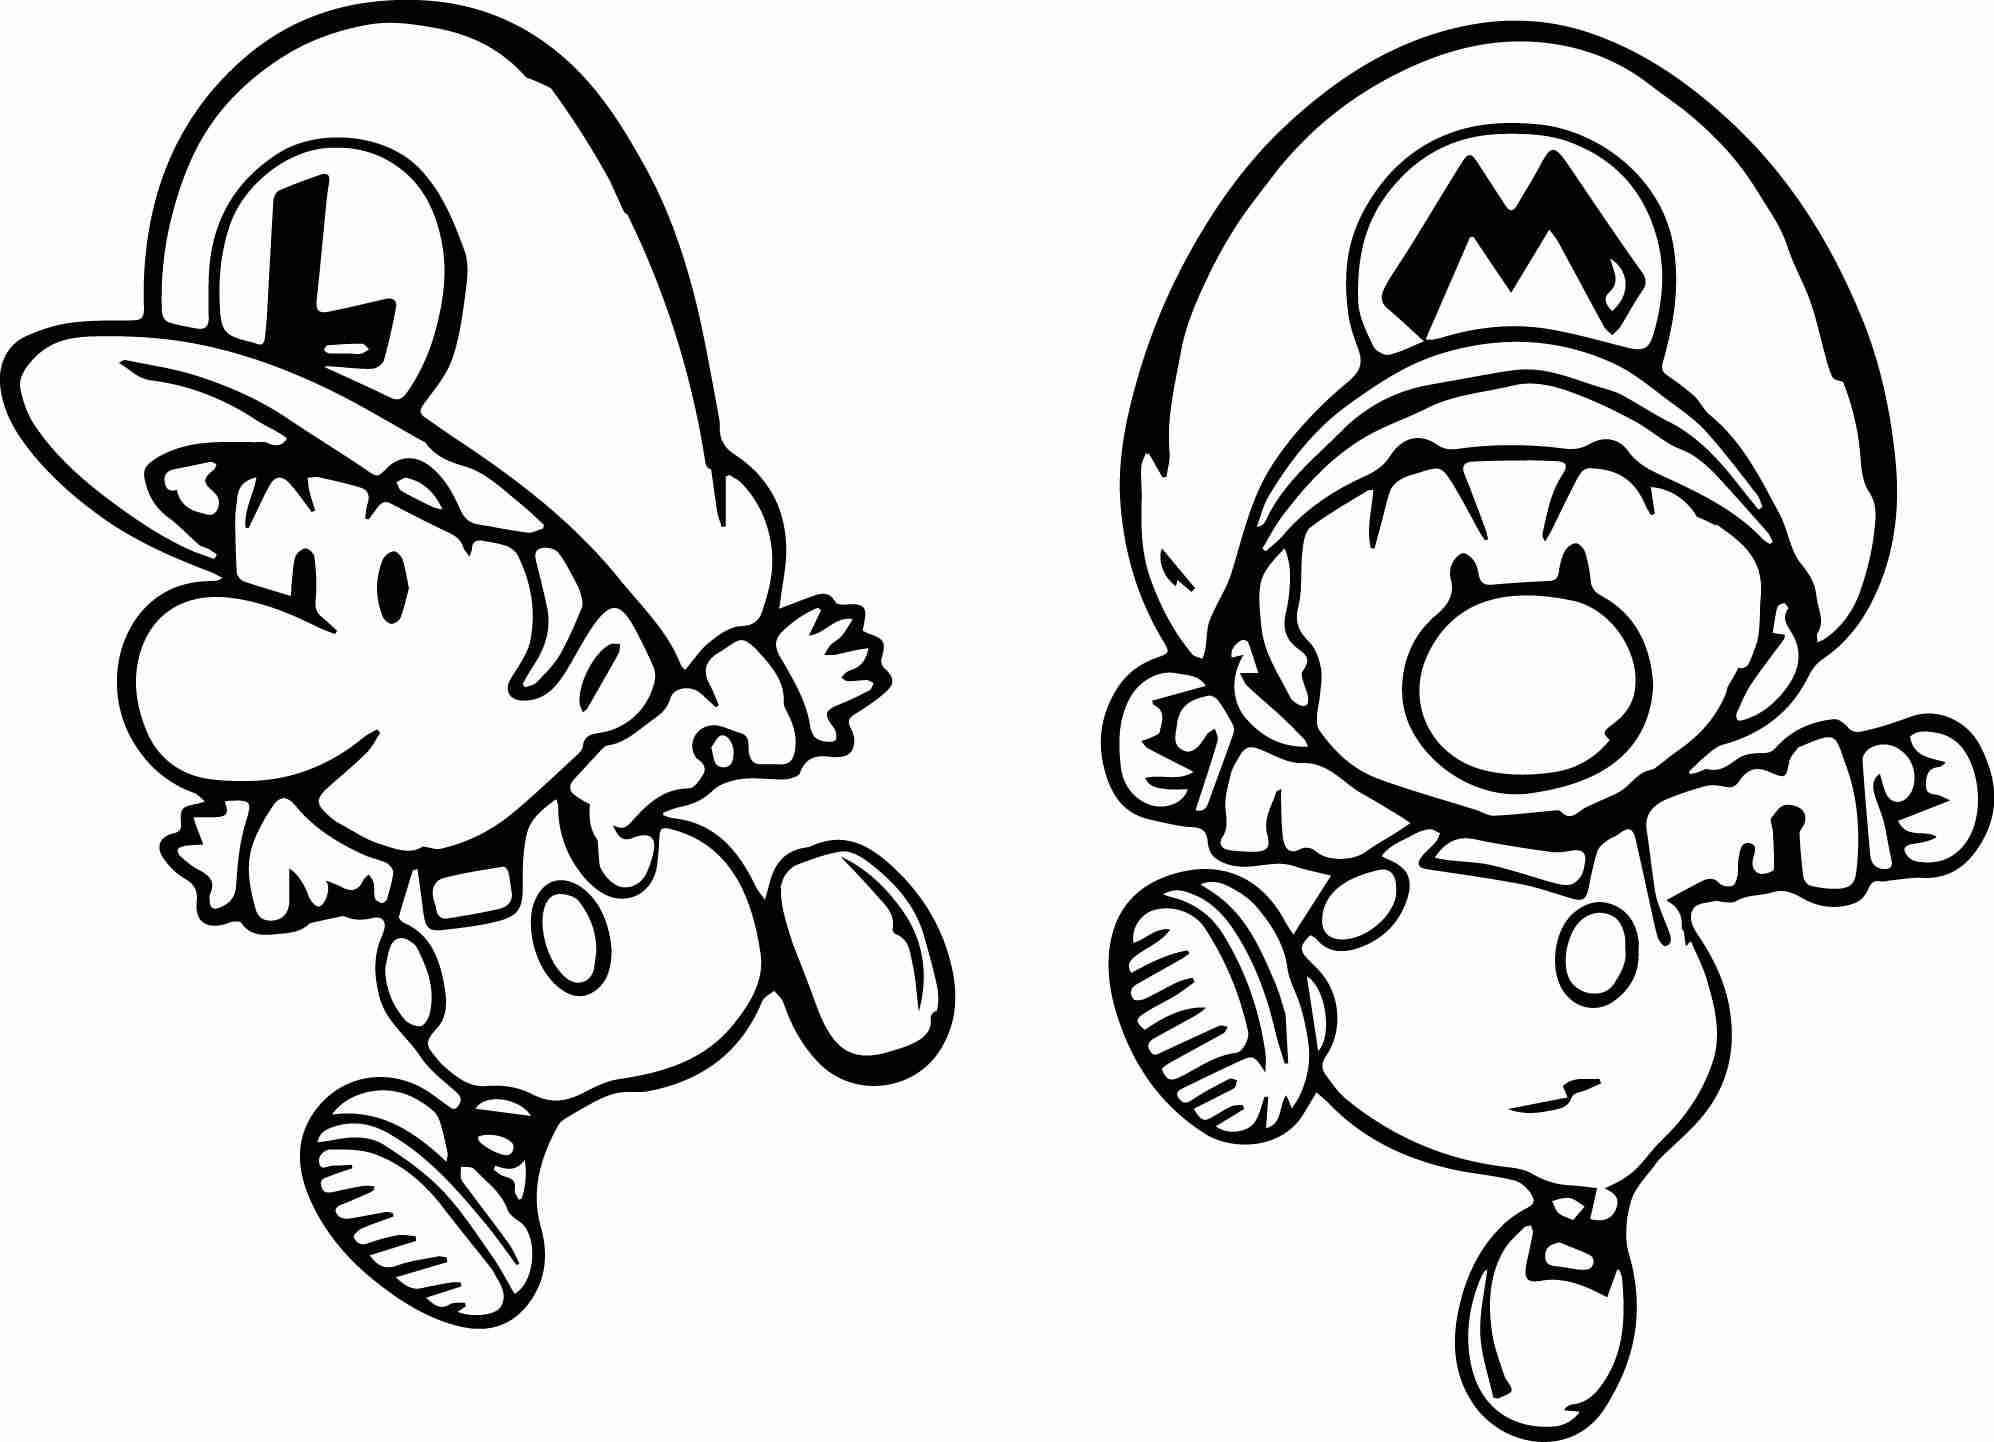 Baby Mario And Baby Luigi Coloring Pages at GetDrawings ...